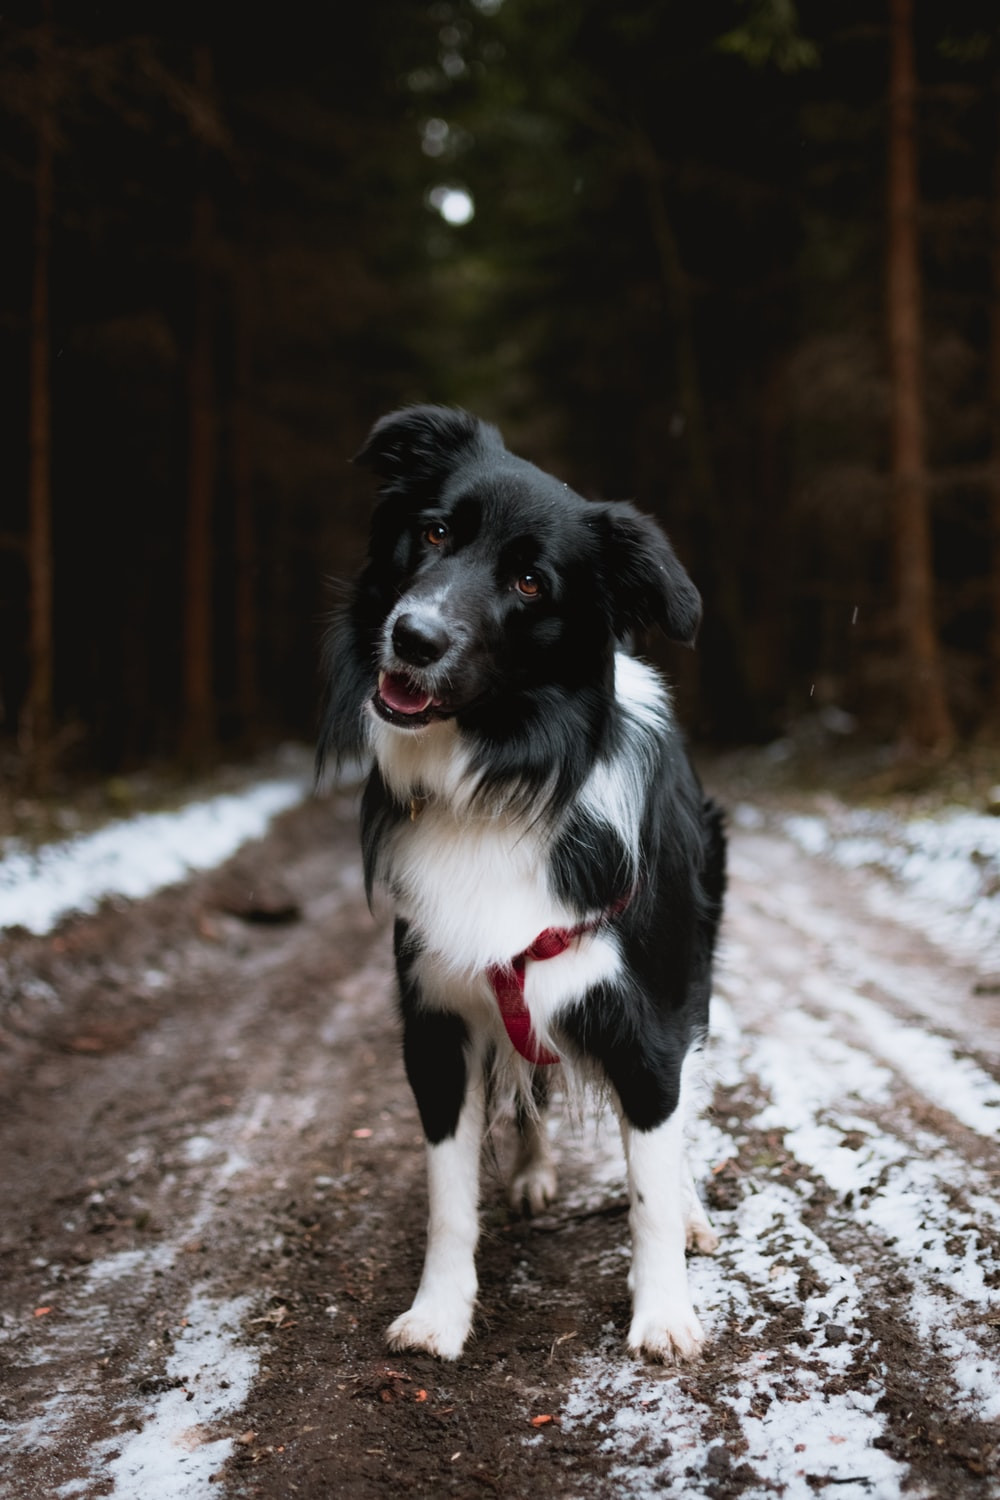 black and white dog standing on soil with snows